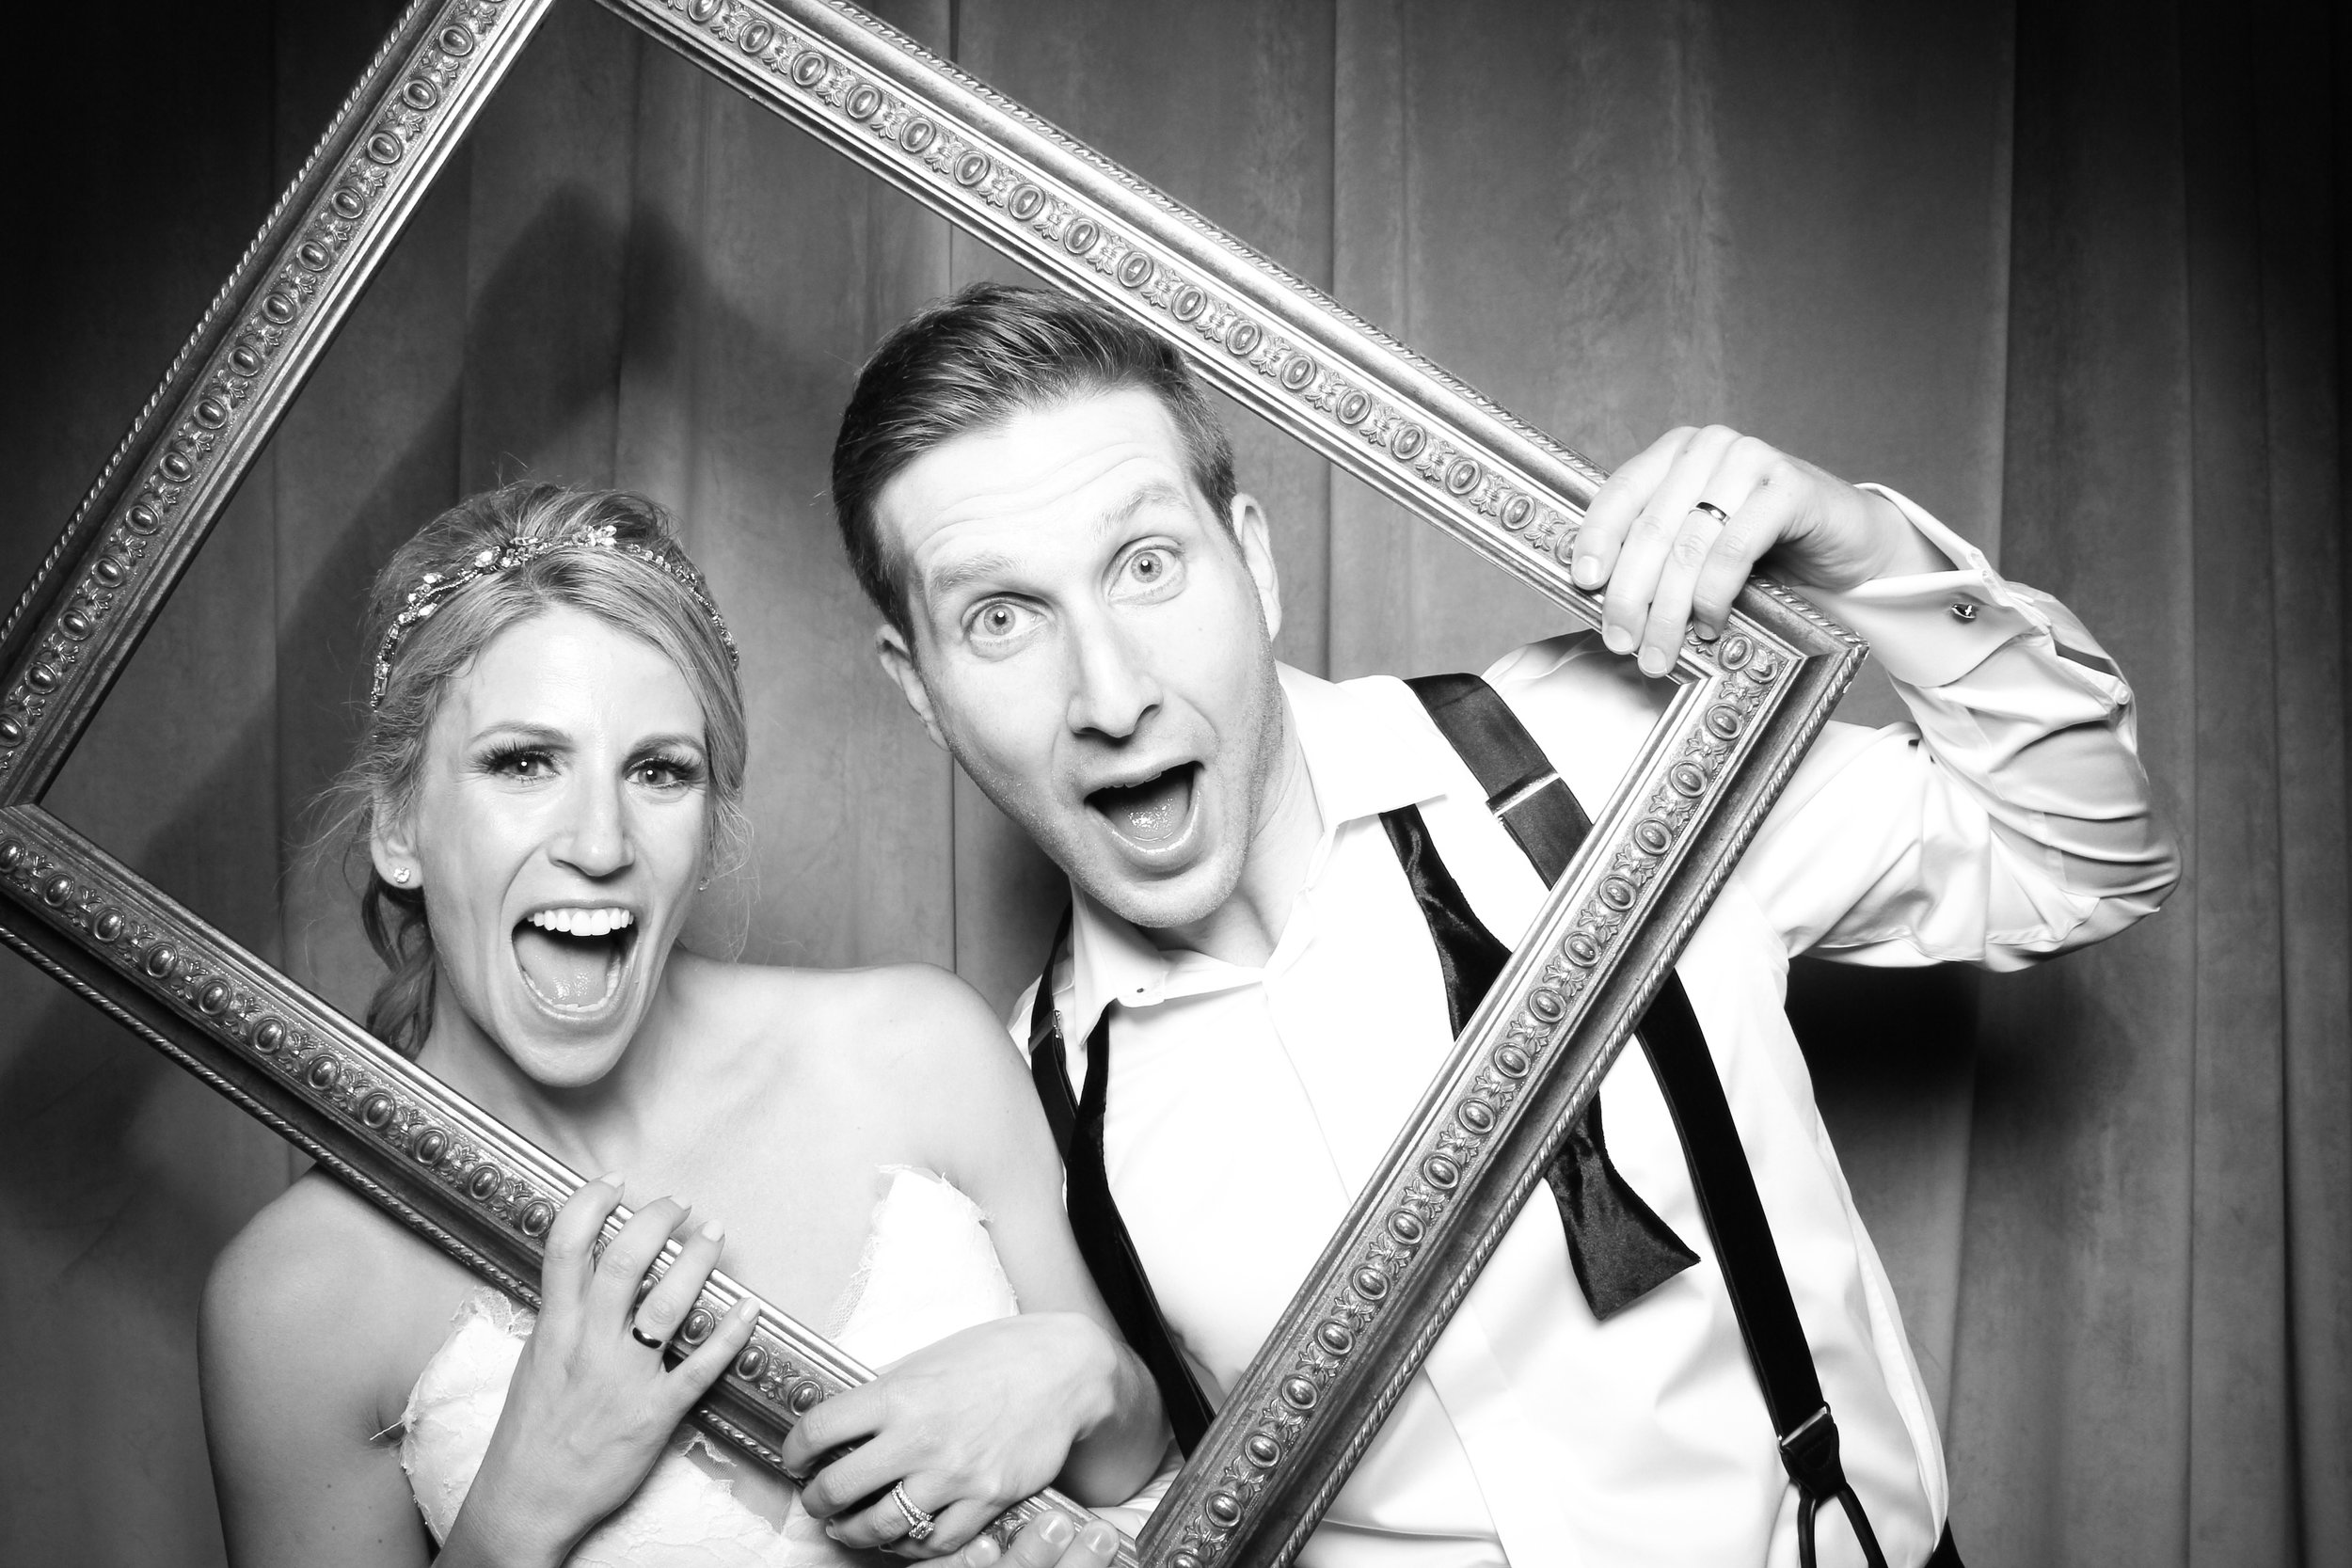 Chicago_Vintage_Wedding_Photobooth_Four_Seasons_26.jpg